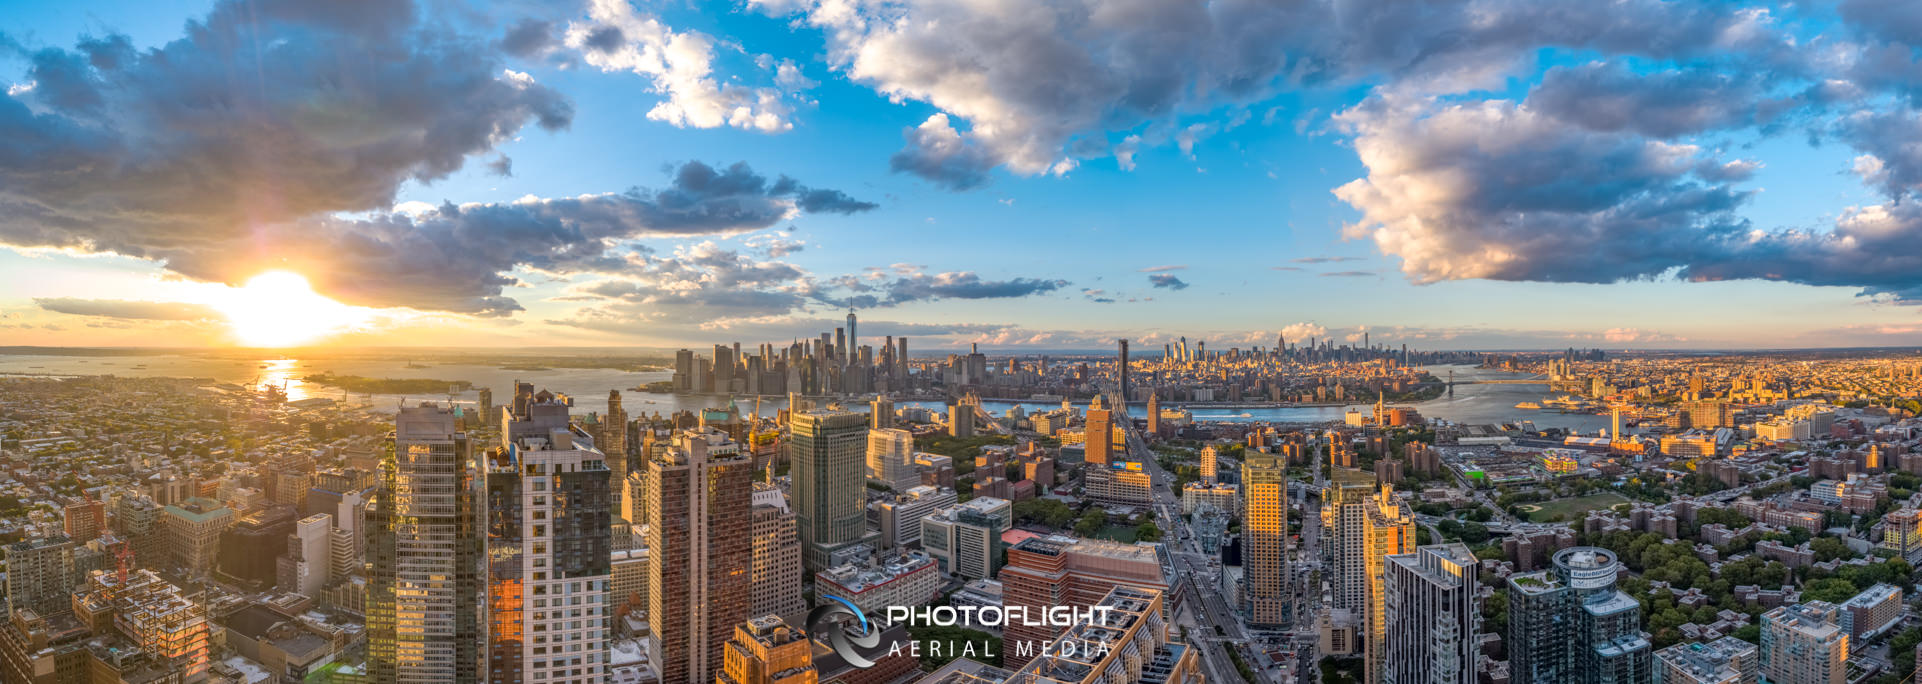 Manhattan Drone Photography - Sunset Panorama, NYC drone photography Subject to copyright ©Photoflight Aerial Media